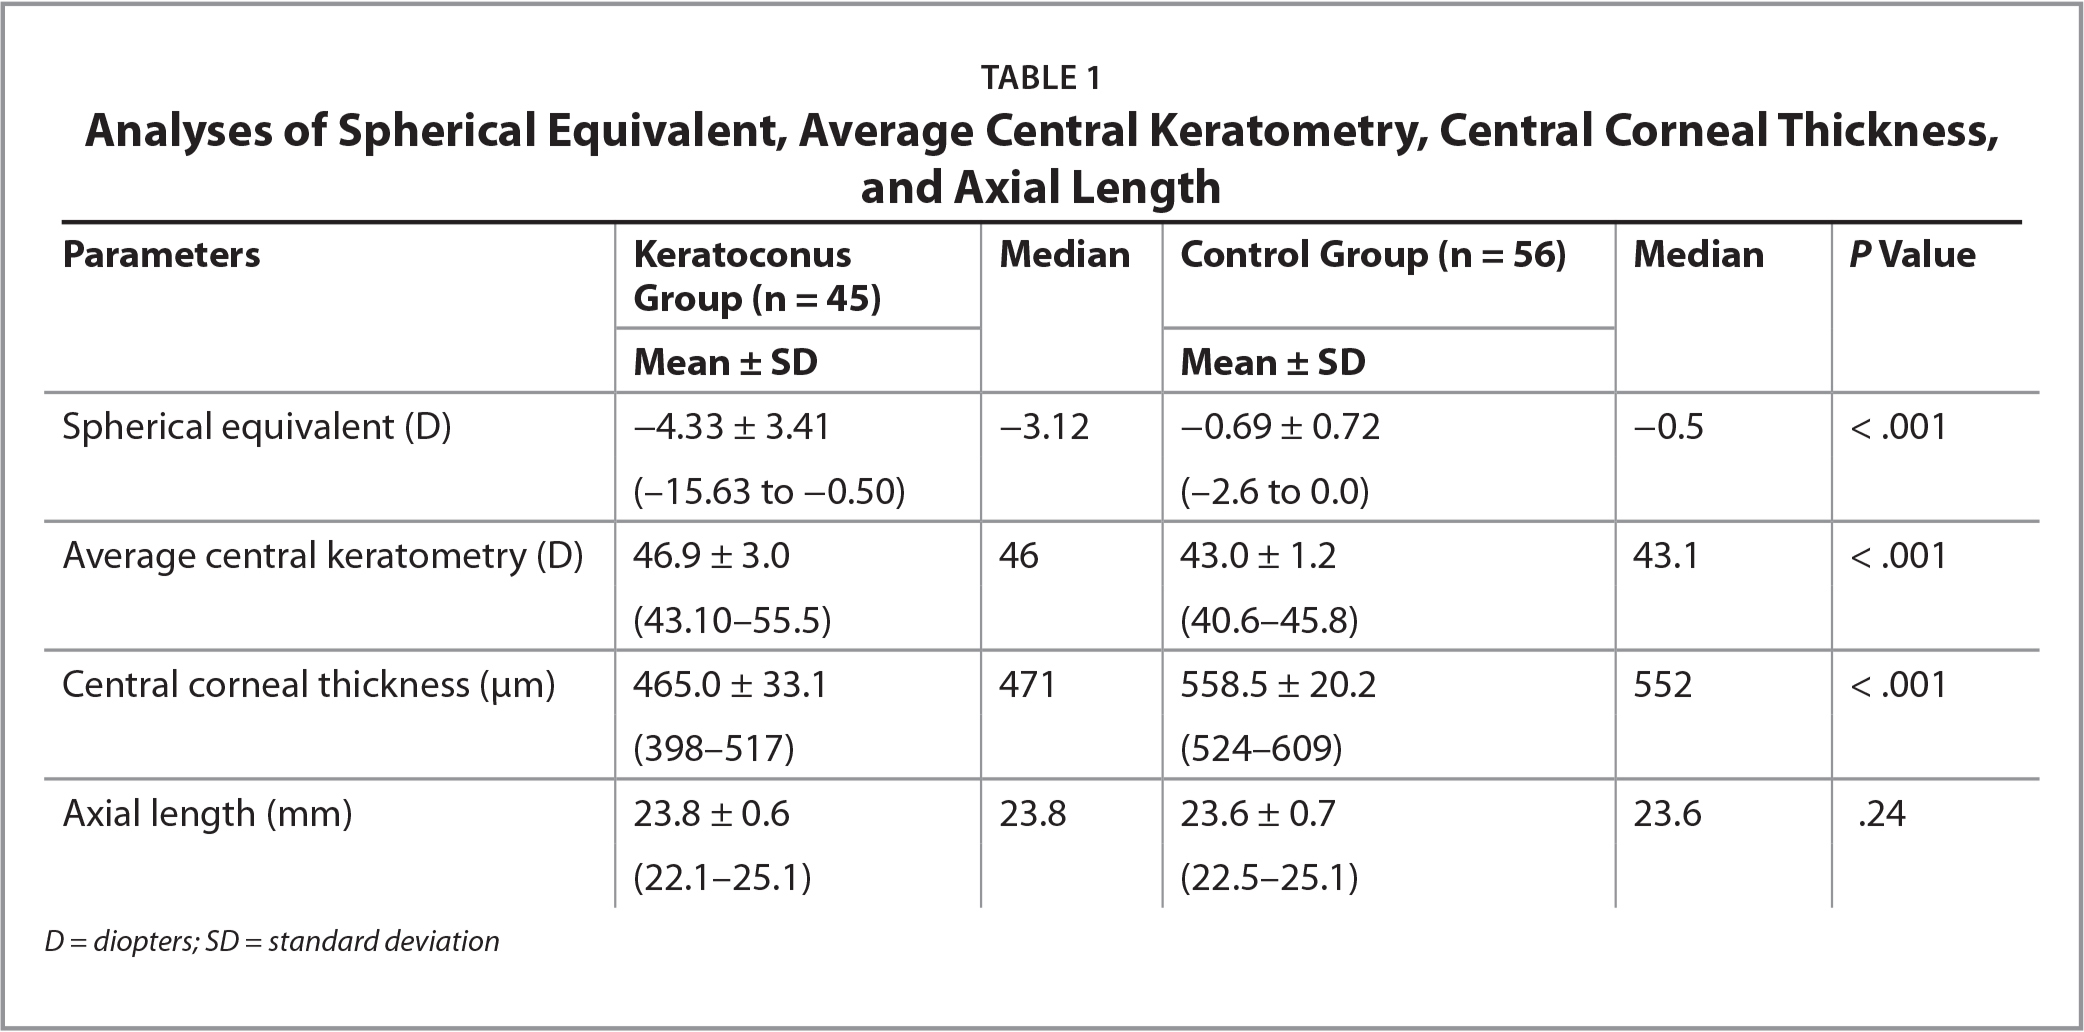 Analyses of Spherical Equivalent, Average Central Keratometry, Central Corneal Thickness, and Axial Length